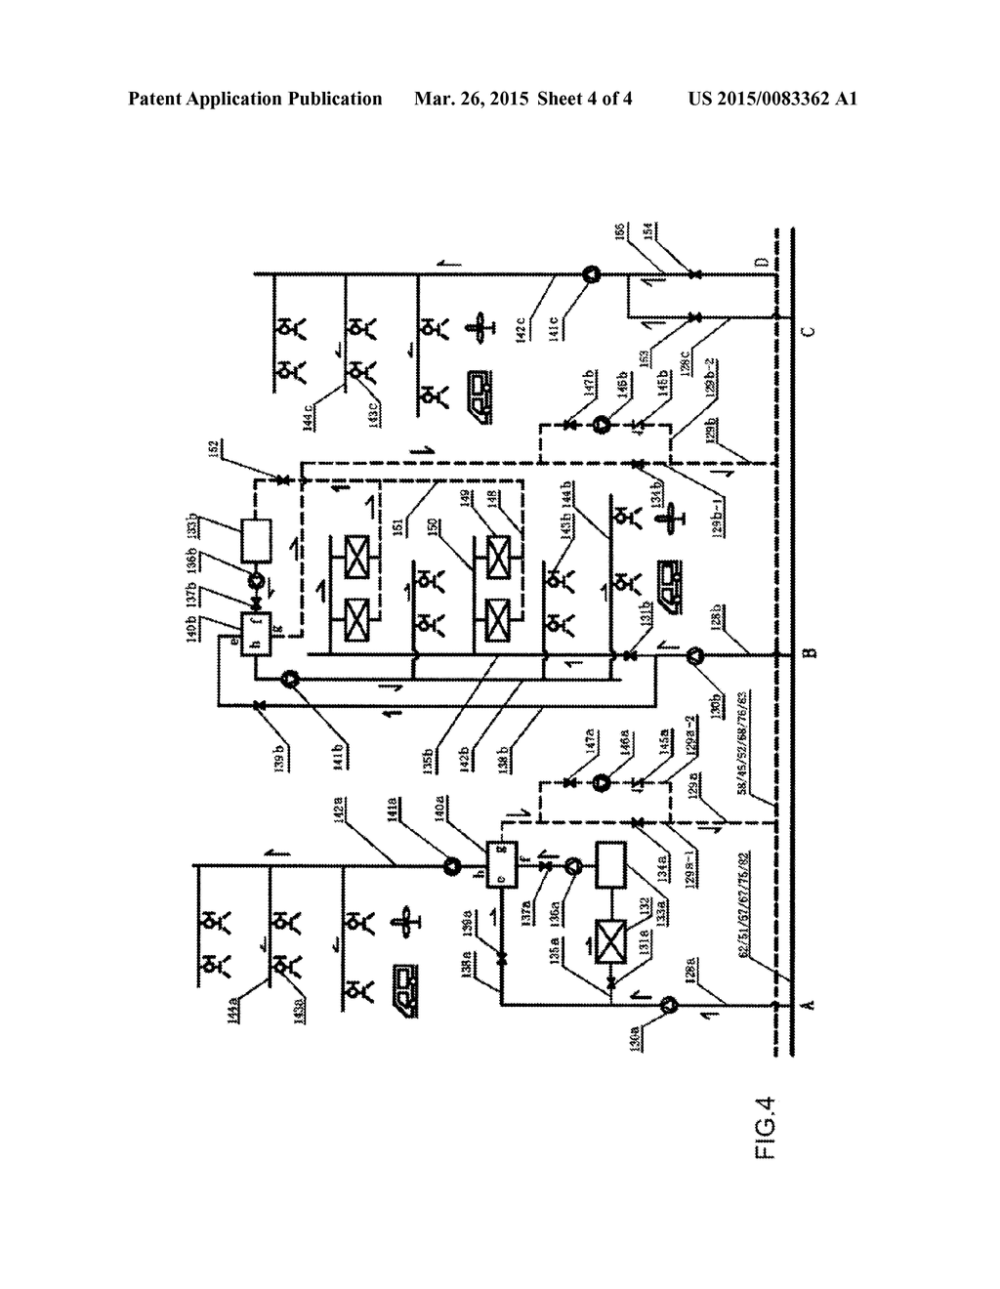 medium resolution of district public water supply pipe network system compatible for source side water for ground source heat pump system and reclaimed water diagram